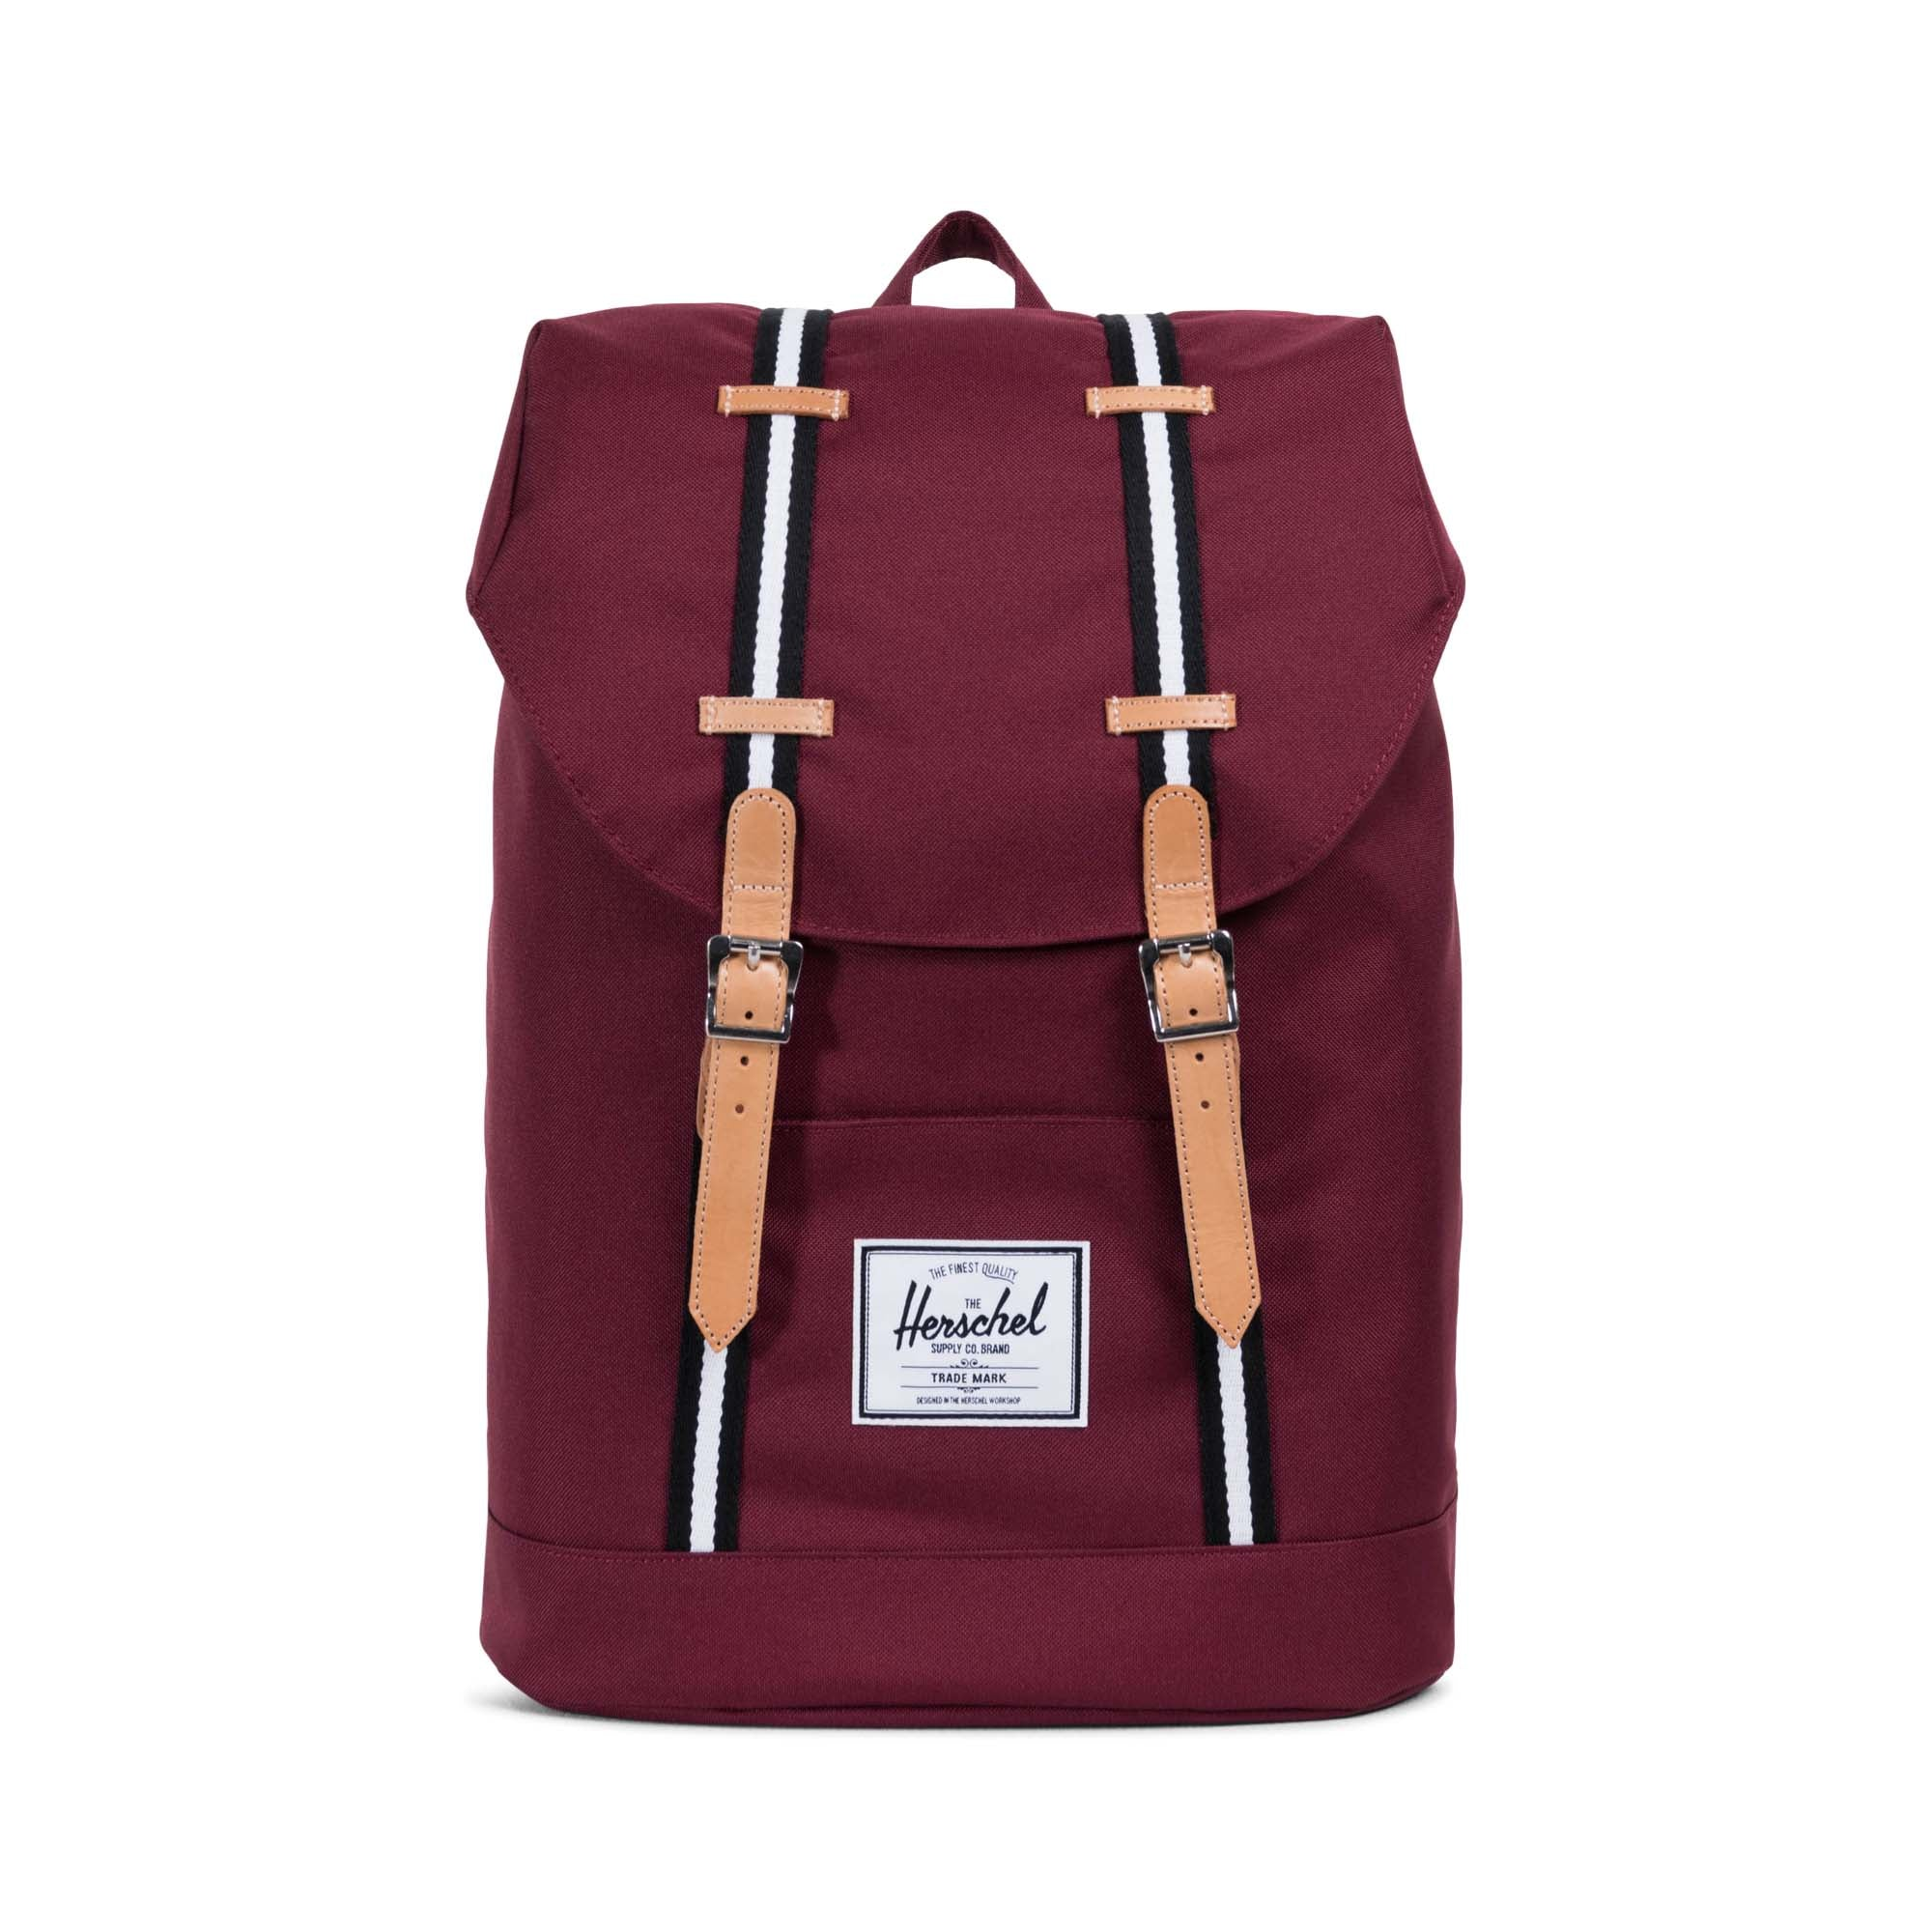 2c04c3bc21 Herschel Offset Collection Retreat Backpack - Windsor Wine Leather ...